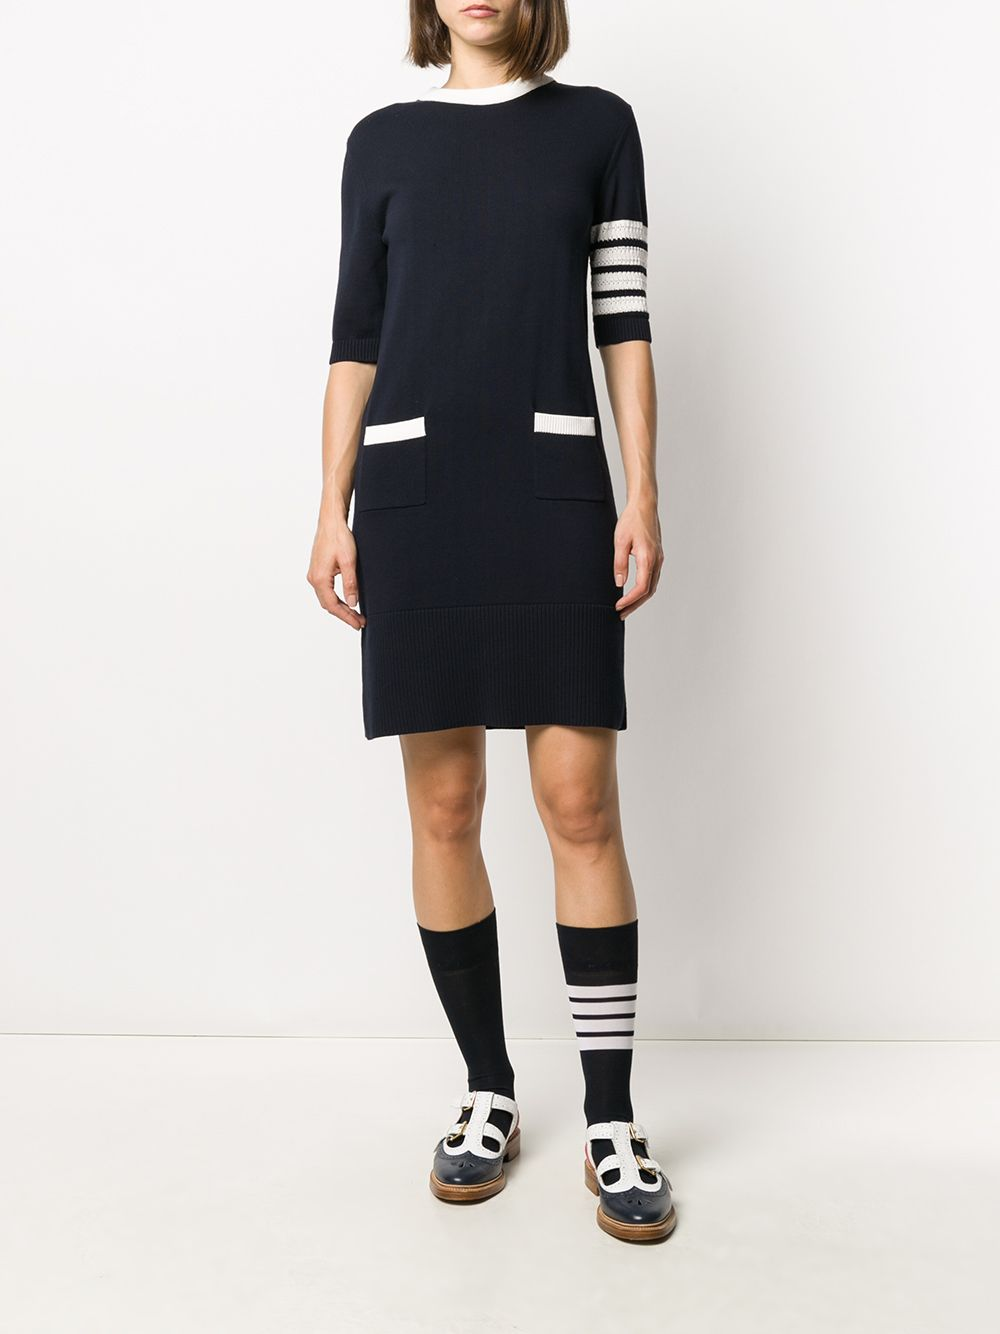 THOM BROWNE WOMEN HECTOR ICON WITH DIAGONAL RWB INTARSIA SS MINI DRESS W/ 4 BAR STRIPE